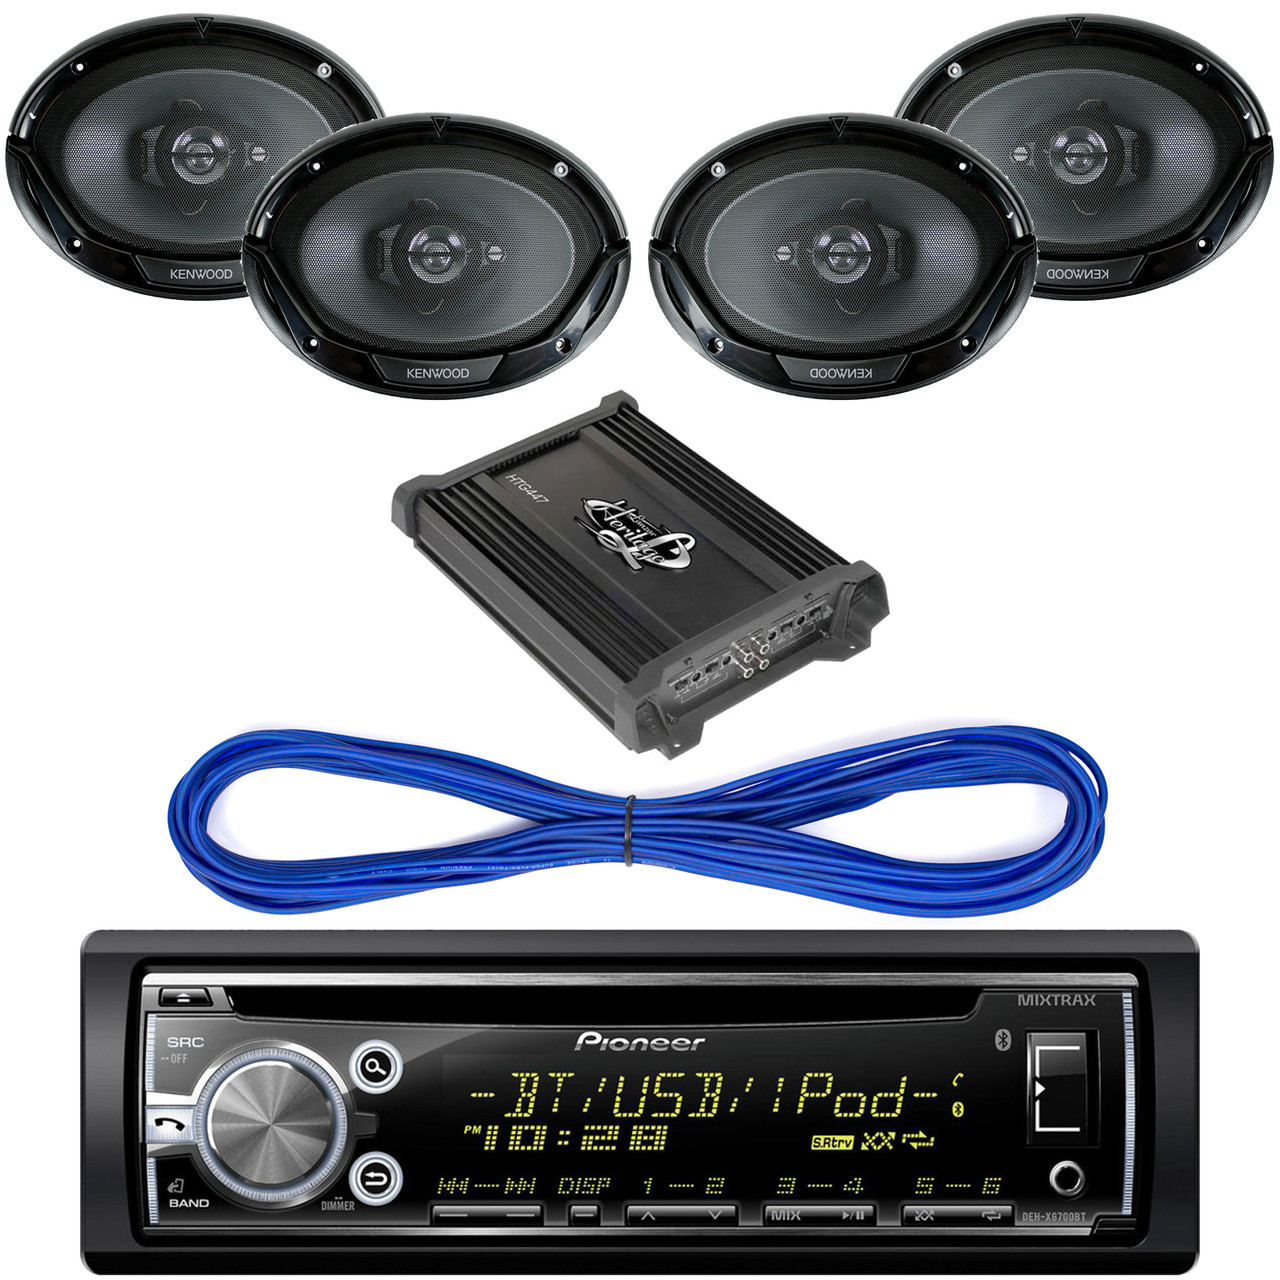 Pioneer DEHS6000BS CD/MP3 Bluetooth Receiver Aux Input USB Multicolor  Illumination With Remote, 14 Gauge 50 Foot Speaker Wire, 2000 Watt 4  Channel